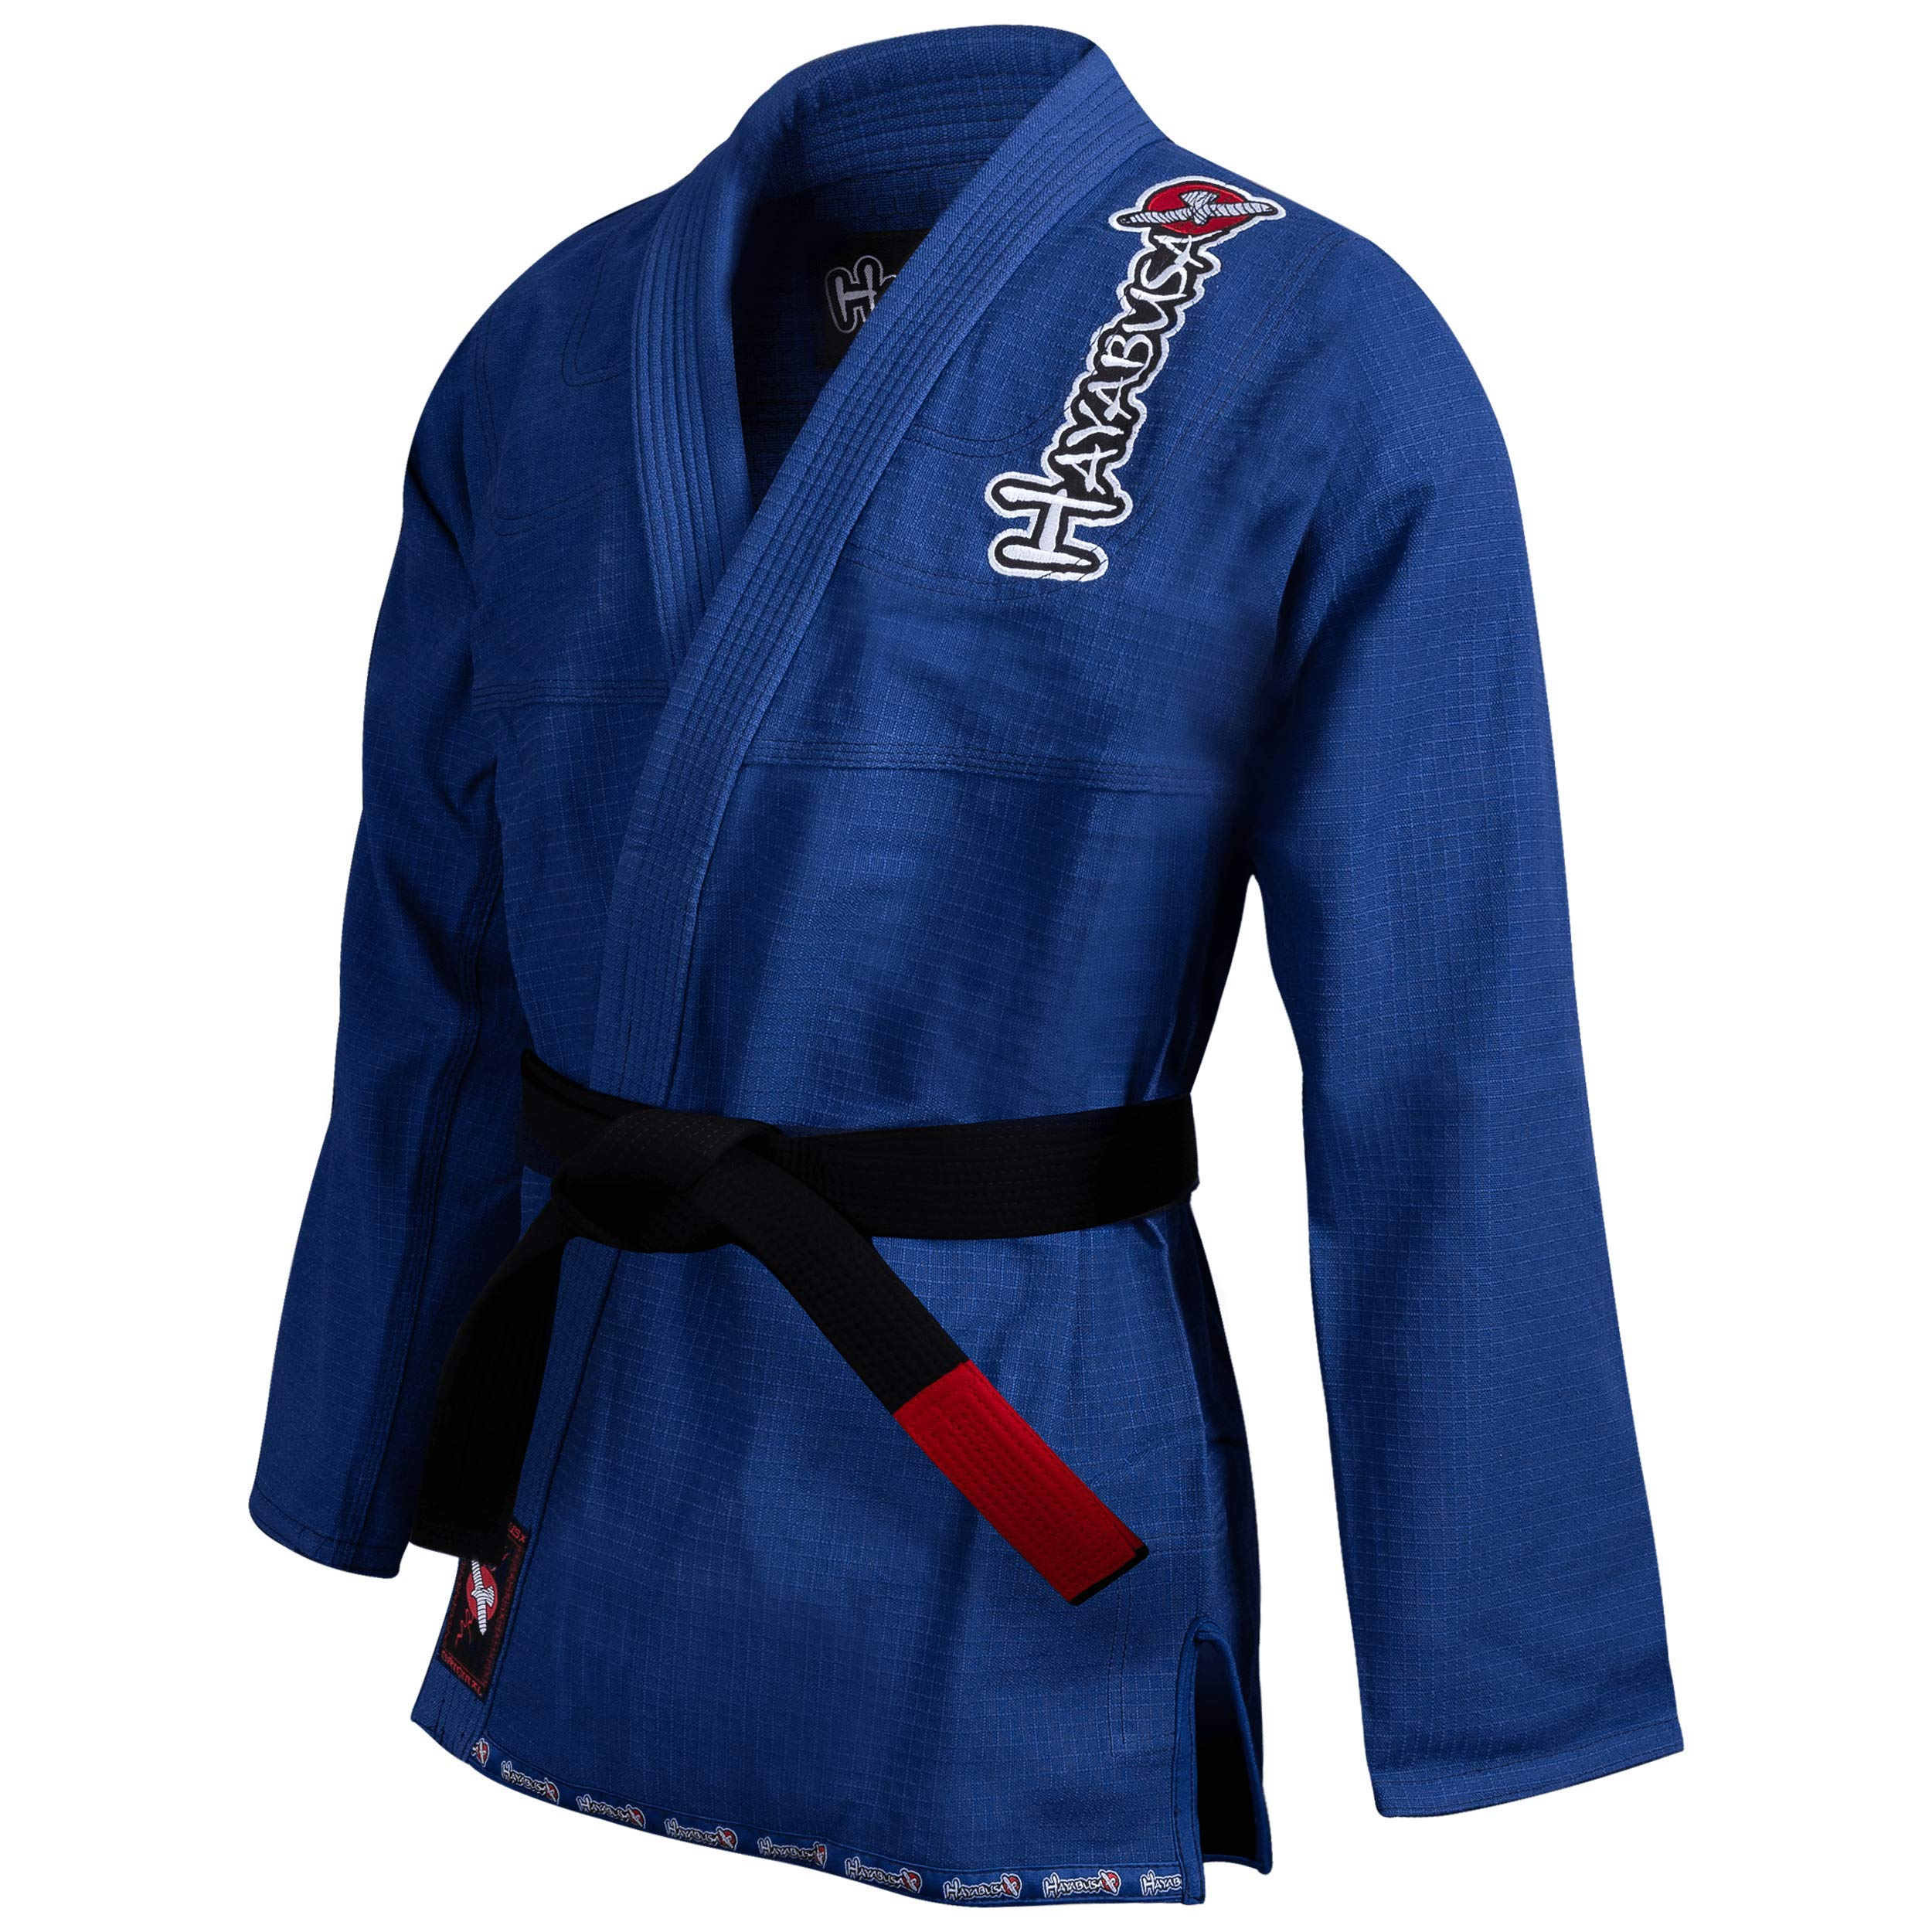 Hayabusa BJJ Gi | Adult Pro Jiu Jitsu Gi - Jacket Only | Blue, A5 by Hayabusa